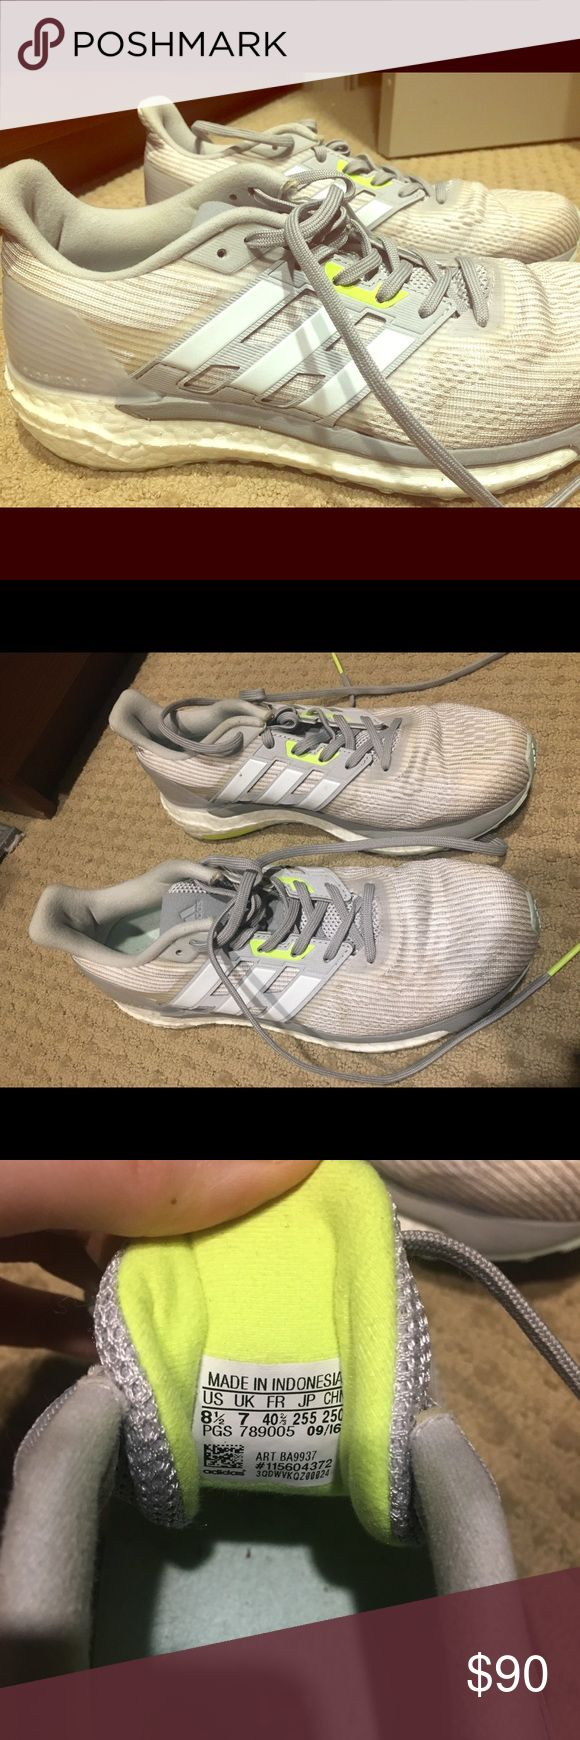 Women's Adidas Ultra Boosts size 8.5 Brand new, worn once. adidas Shoes Athletic Shoes